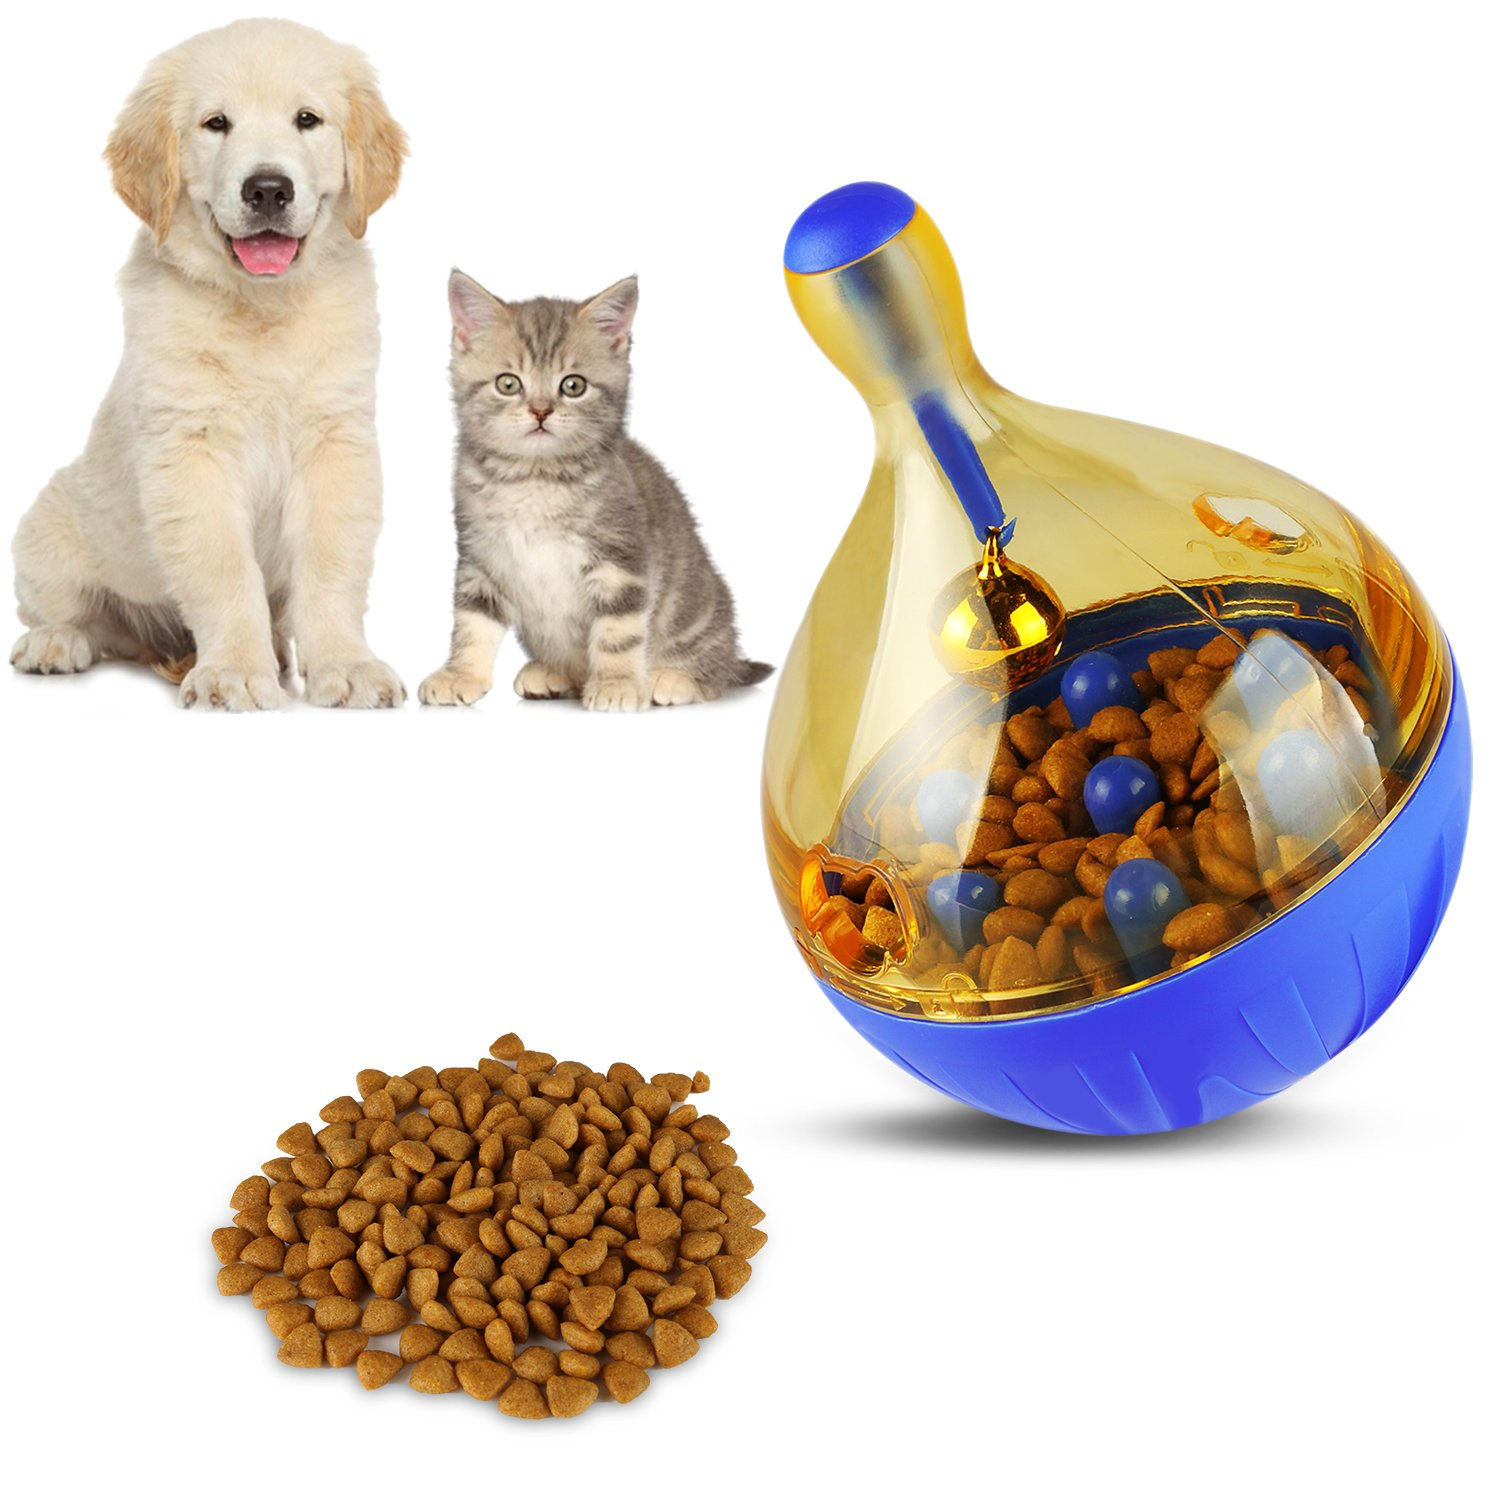 Airsspu Interactive Food Dispensing Dog Toy Dogs & Cats Increases IQ and Mental Stimulation Pets Treat-dispensing Ball - Squeaky Ball Dog Toy for Small/Medium/Large Dogs